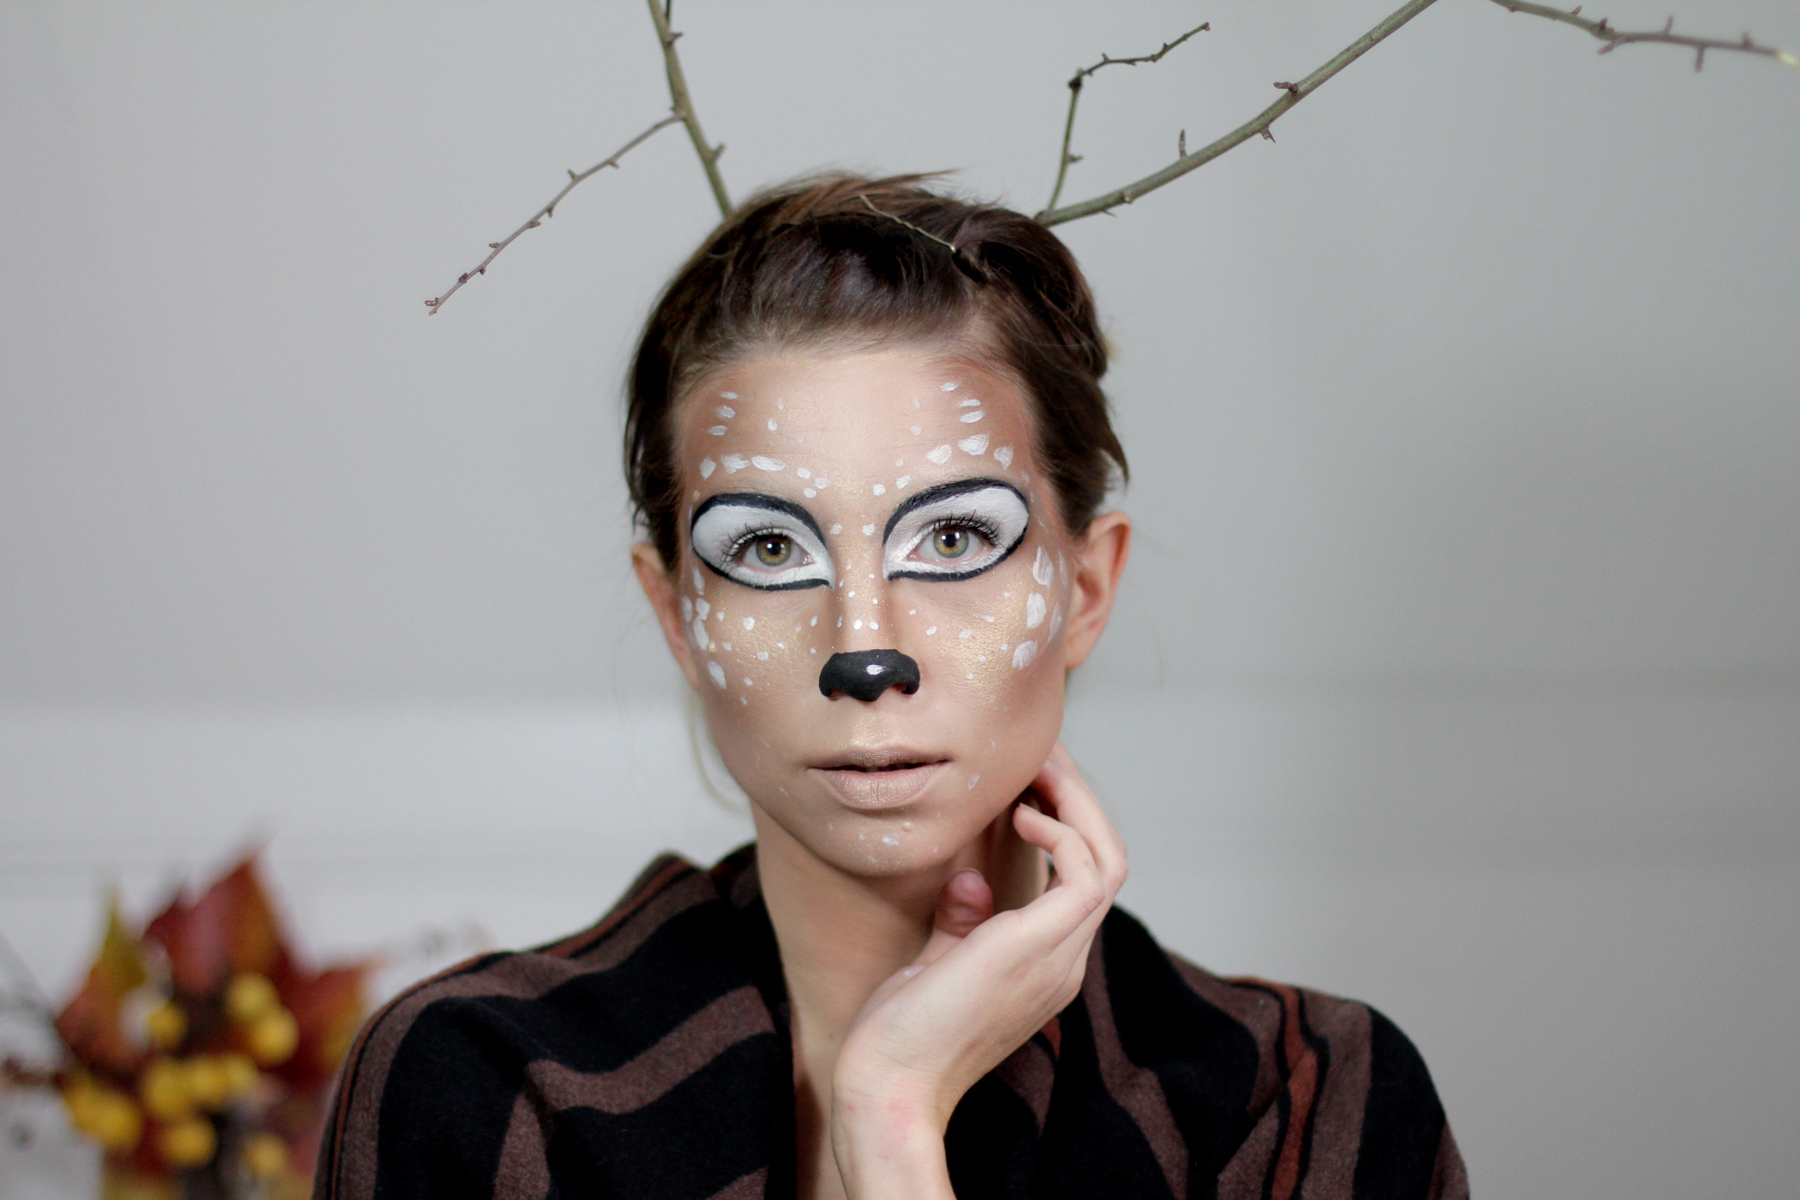 halloween bambi deer make up styling idea tutorial how to schminken grusel scary cats & dogs beauty blog beautyblogger ricarda schernus 6